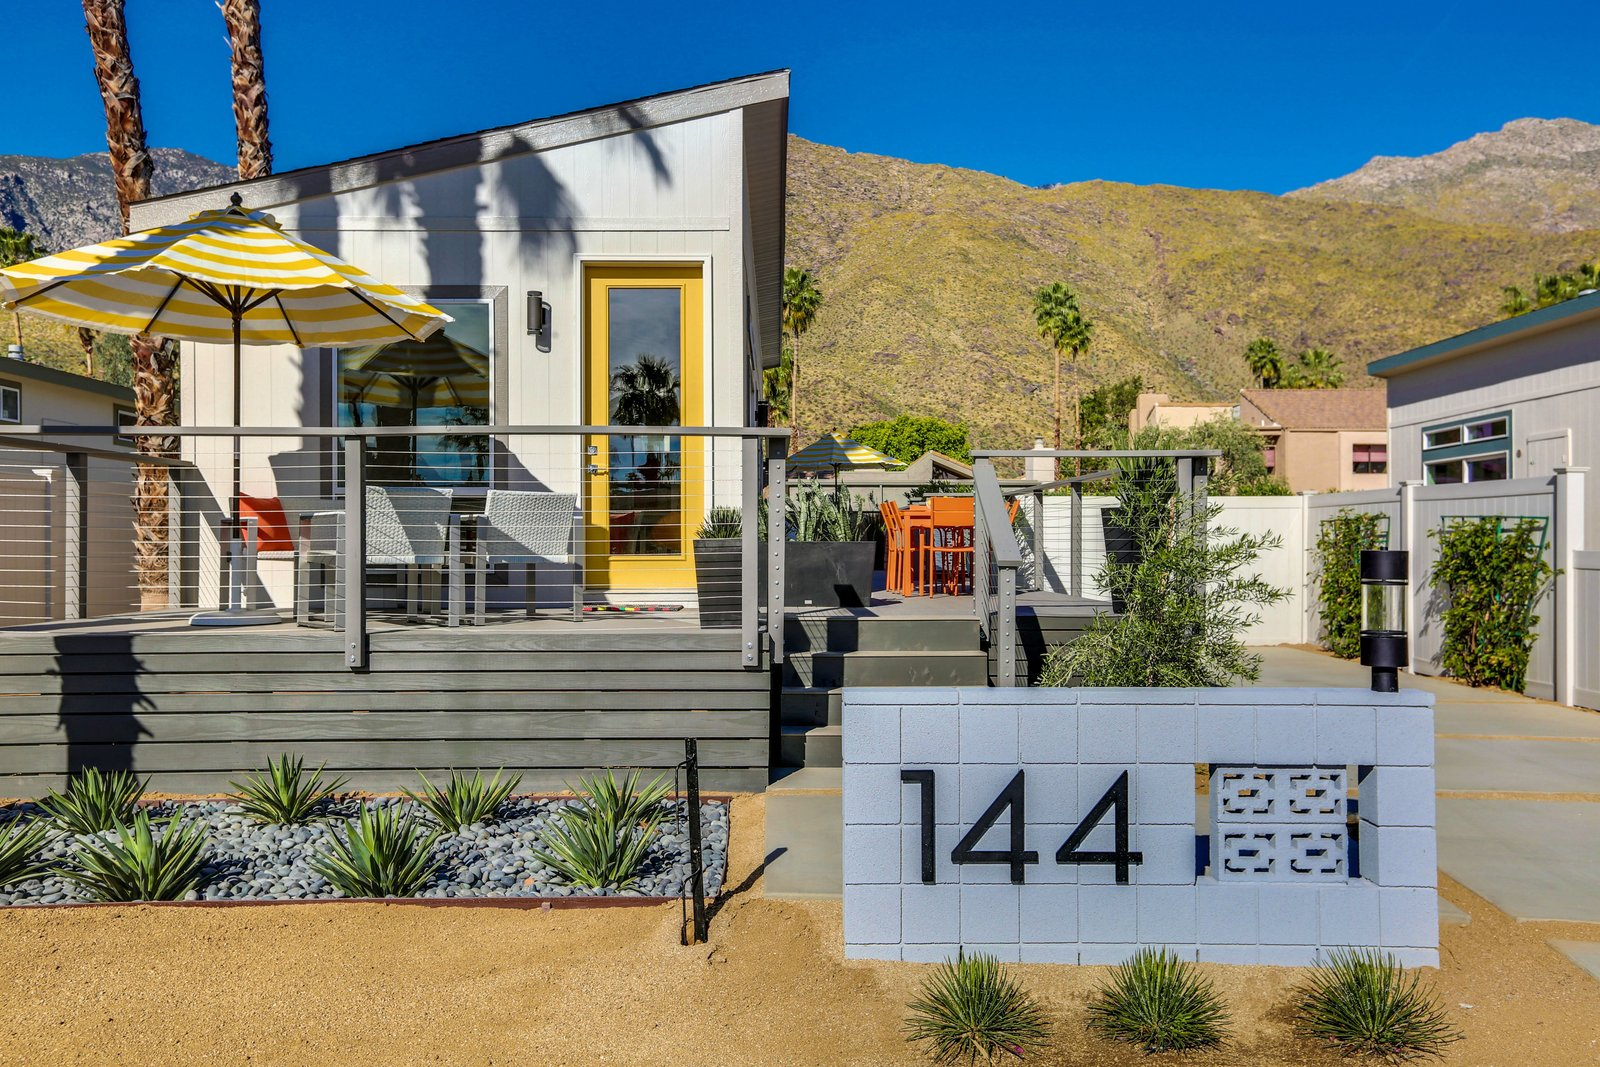 Tiny Homes in This Palm Springs Community Start at $155K